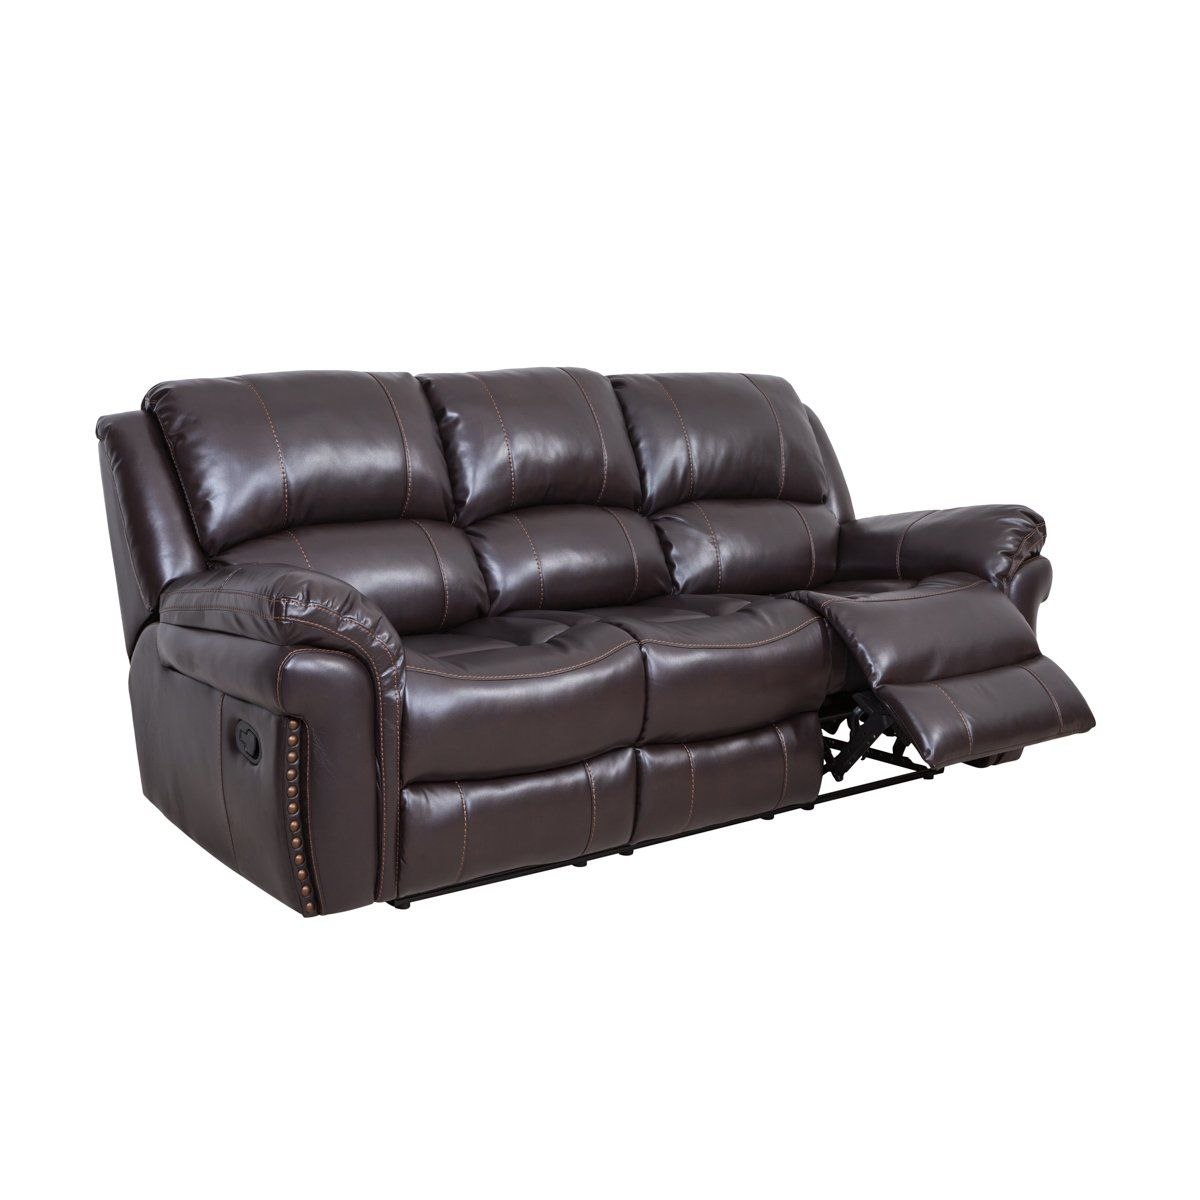 Comodaland luxury bonded leather sofaclassic living room reclining